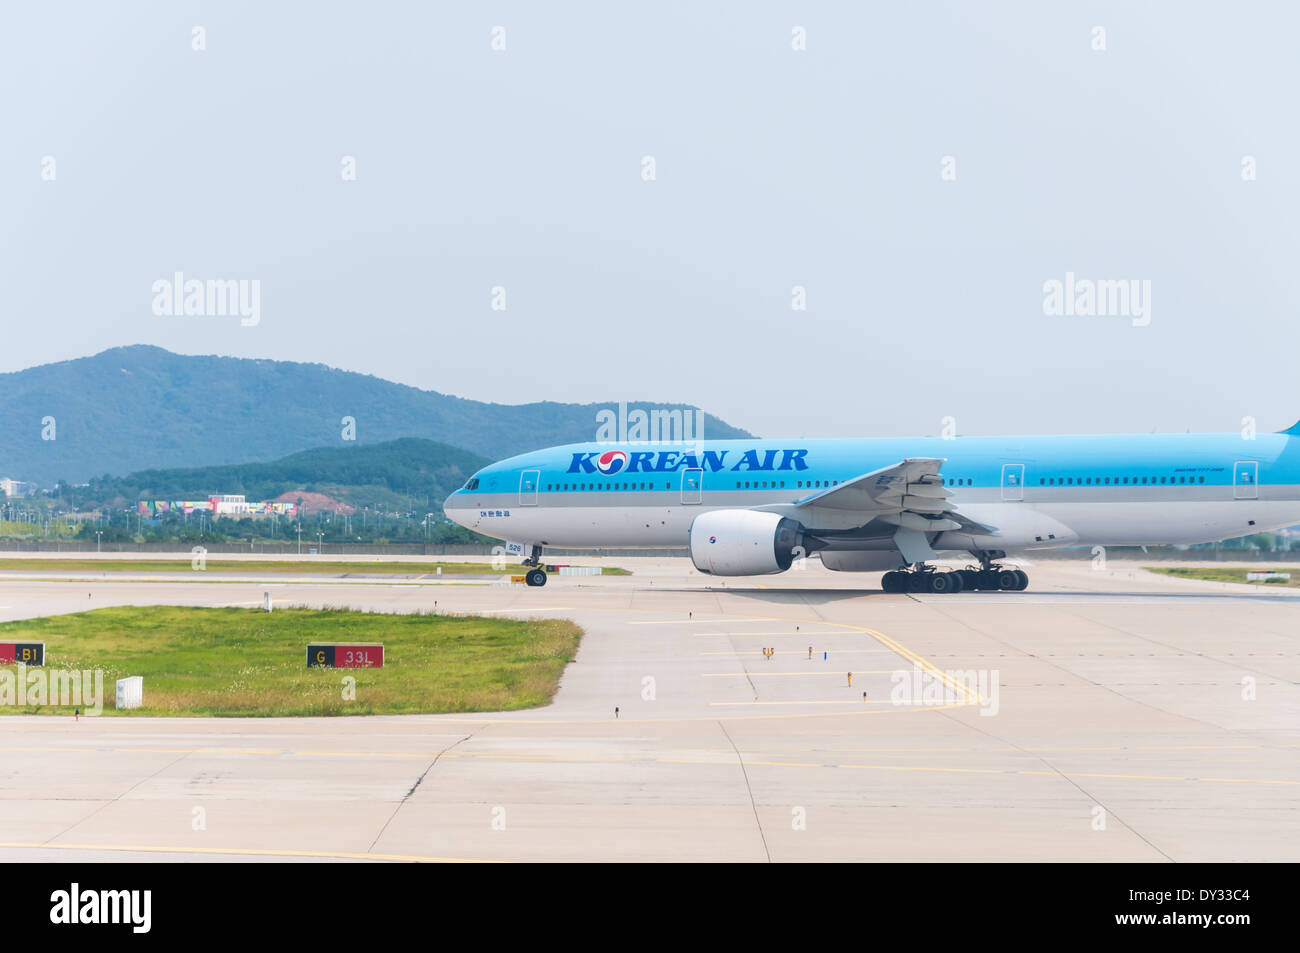 A Korean Air plane taxis to the runway to prepare for takeoff. - Stock Image